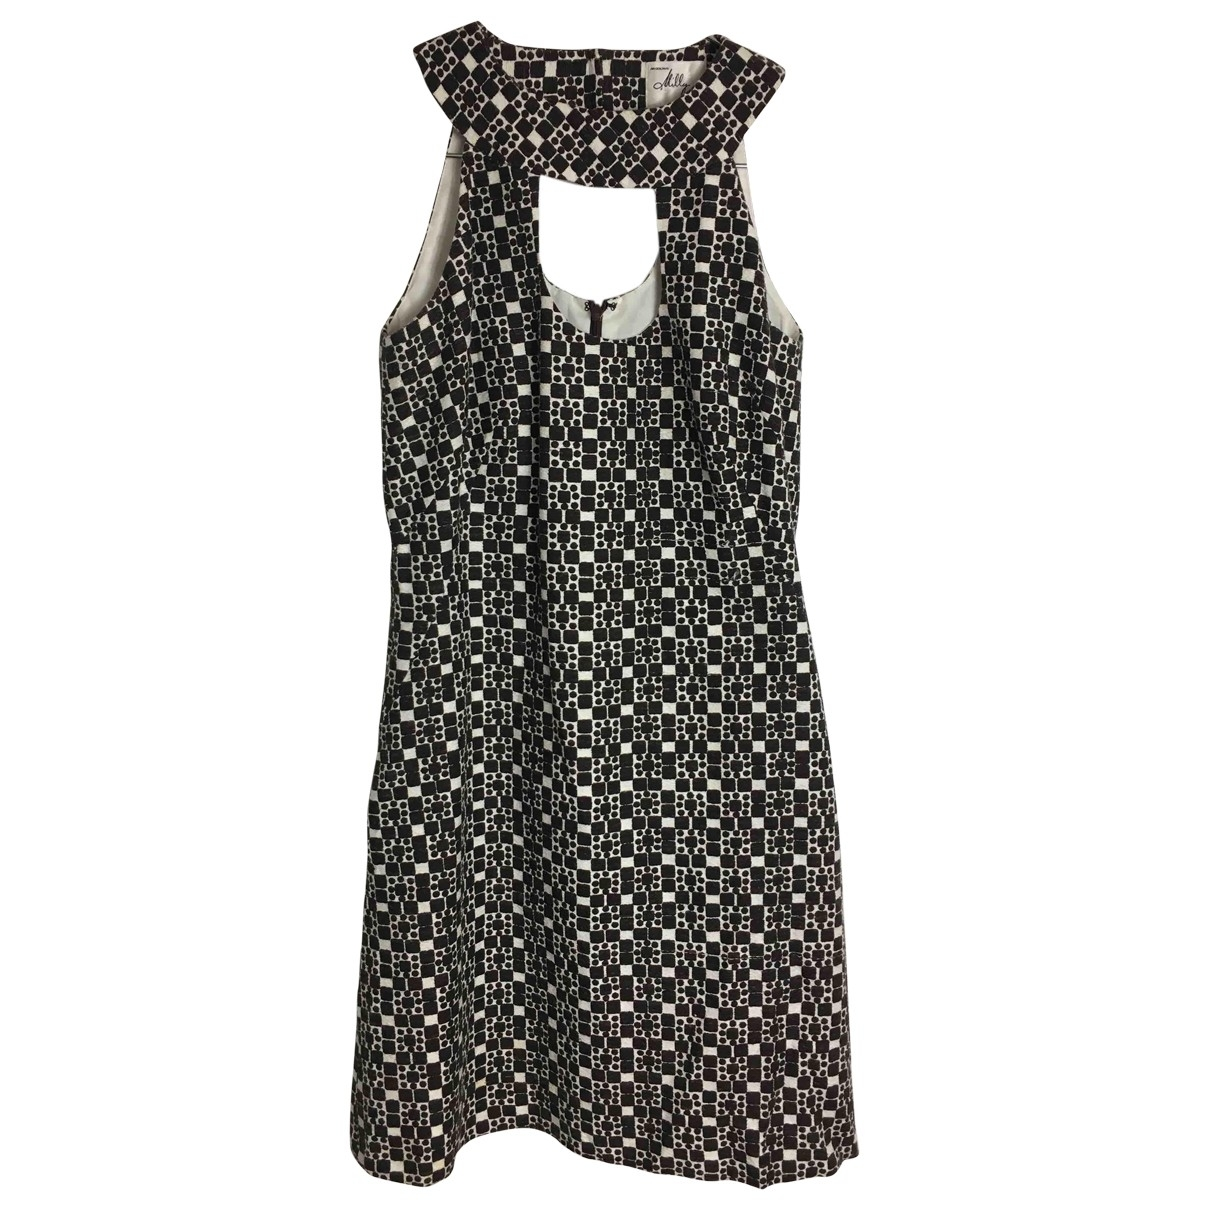 Milly \N White Cotton dress for Women 4 US